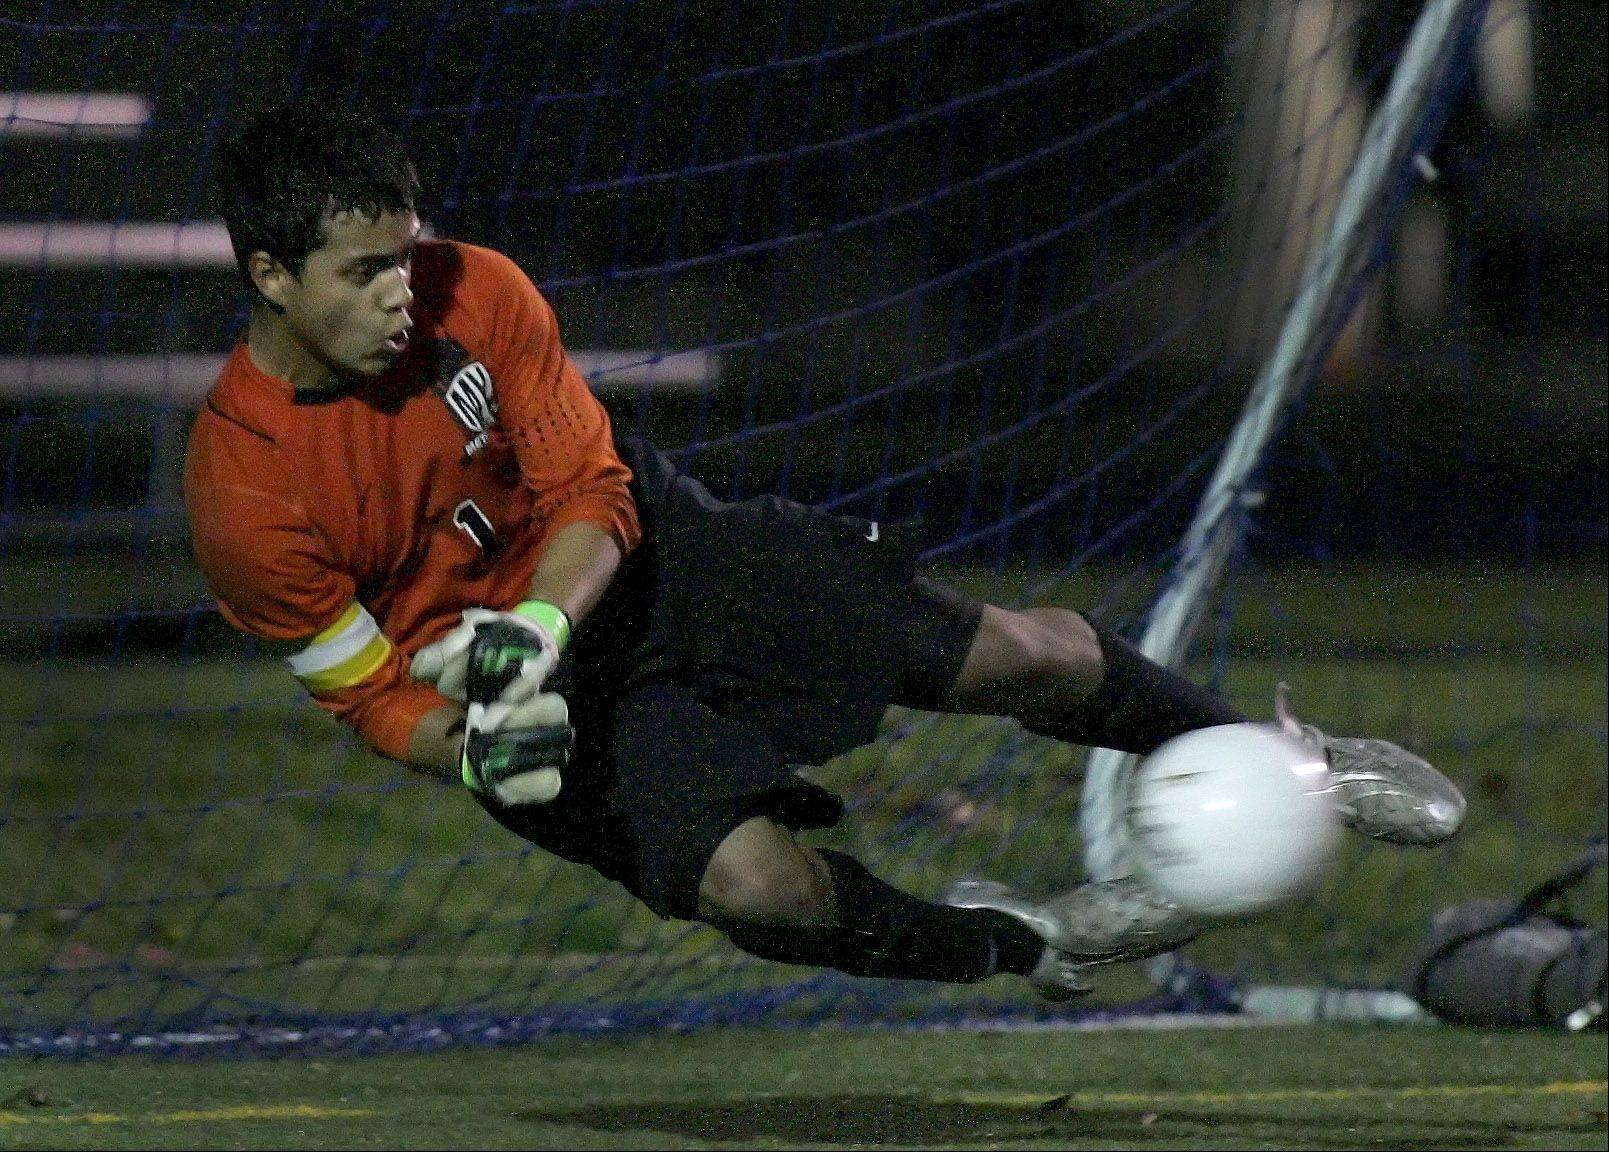 Gabe Gongora-Falla of Metea Valley makes another save against Wheaton Warrenville South during boys Class 3A sectional soccer in West Chicago.